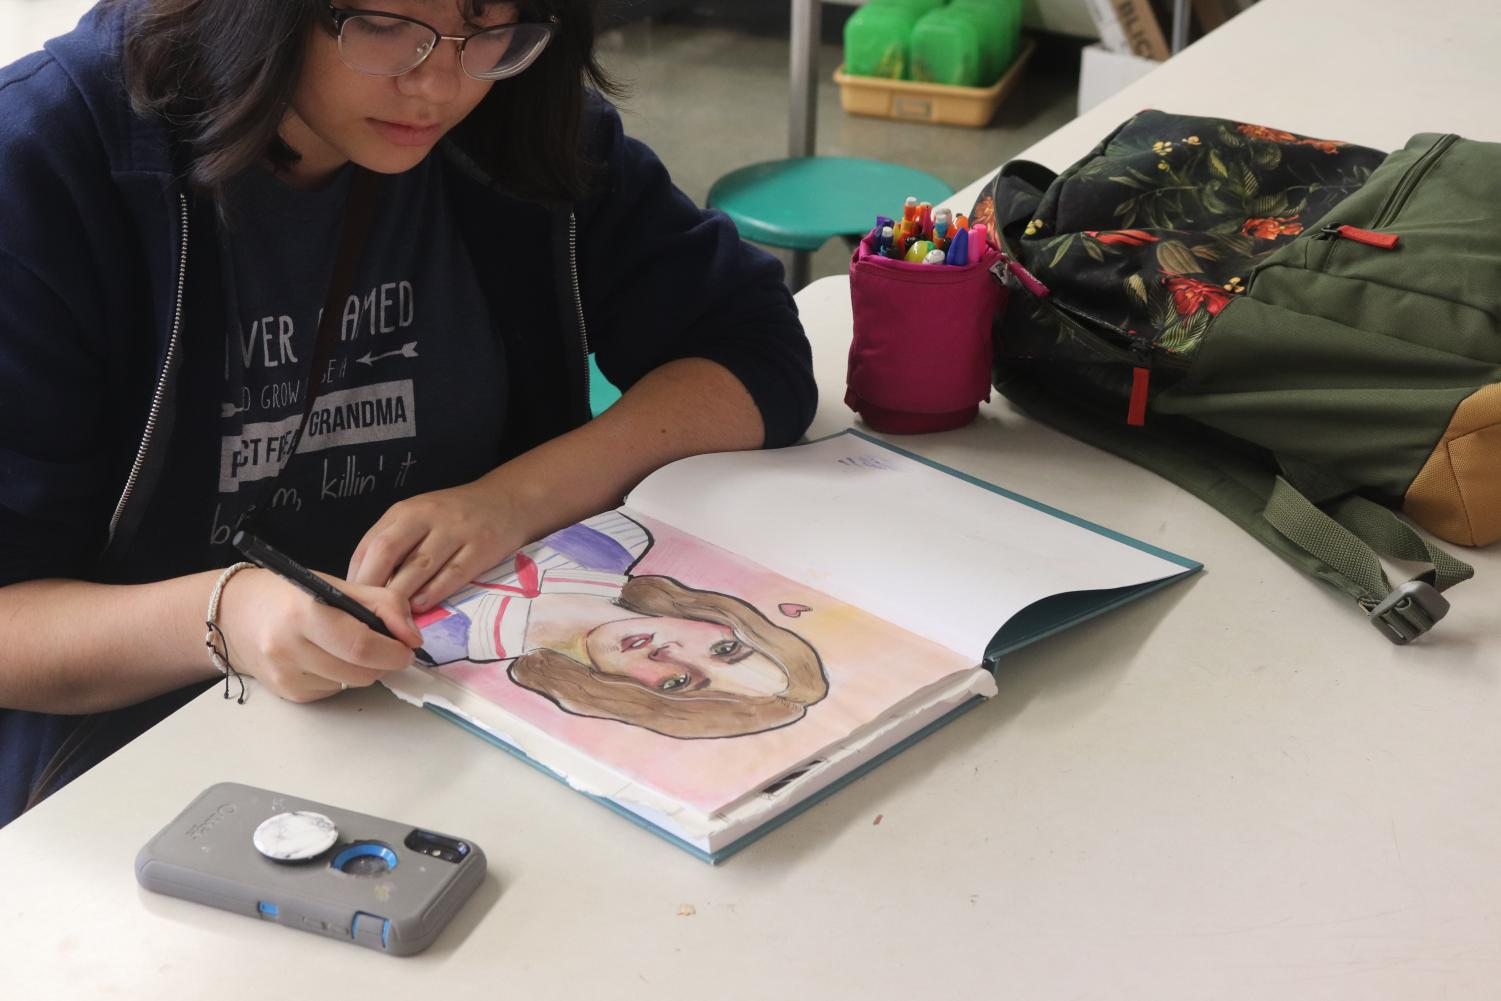 """Sitting in Advanced Studio Art, senior Emily Asplin is working on a side project of a character from the show Stranger Things. Students in Advanced Studio art are allowed to focus on other projects outside of the assigned work.""""Watching shows really inspired me to draw the characters and help develop my style,"""" Asplin said. """"I really like to focus my drawing on people, I am fascinated with the cartoony realistic style and that's what I have developed my style into."""""""